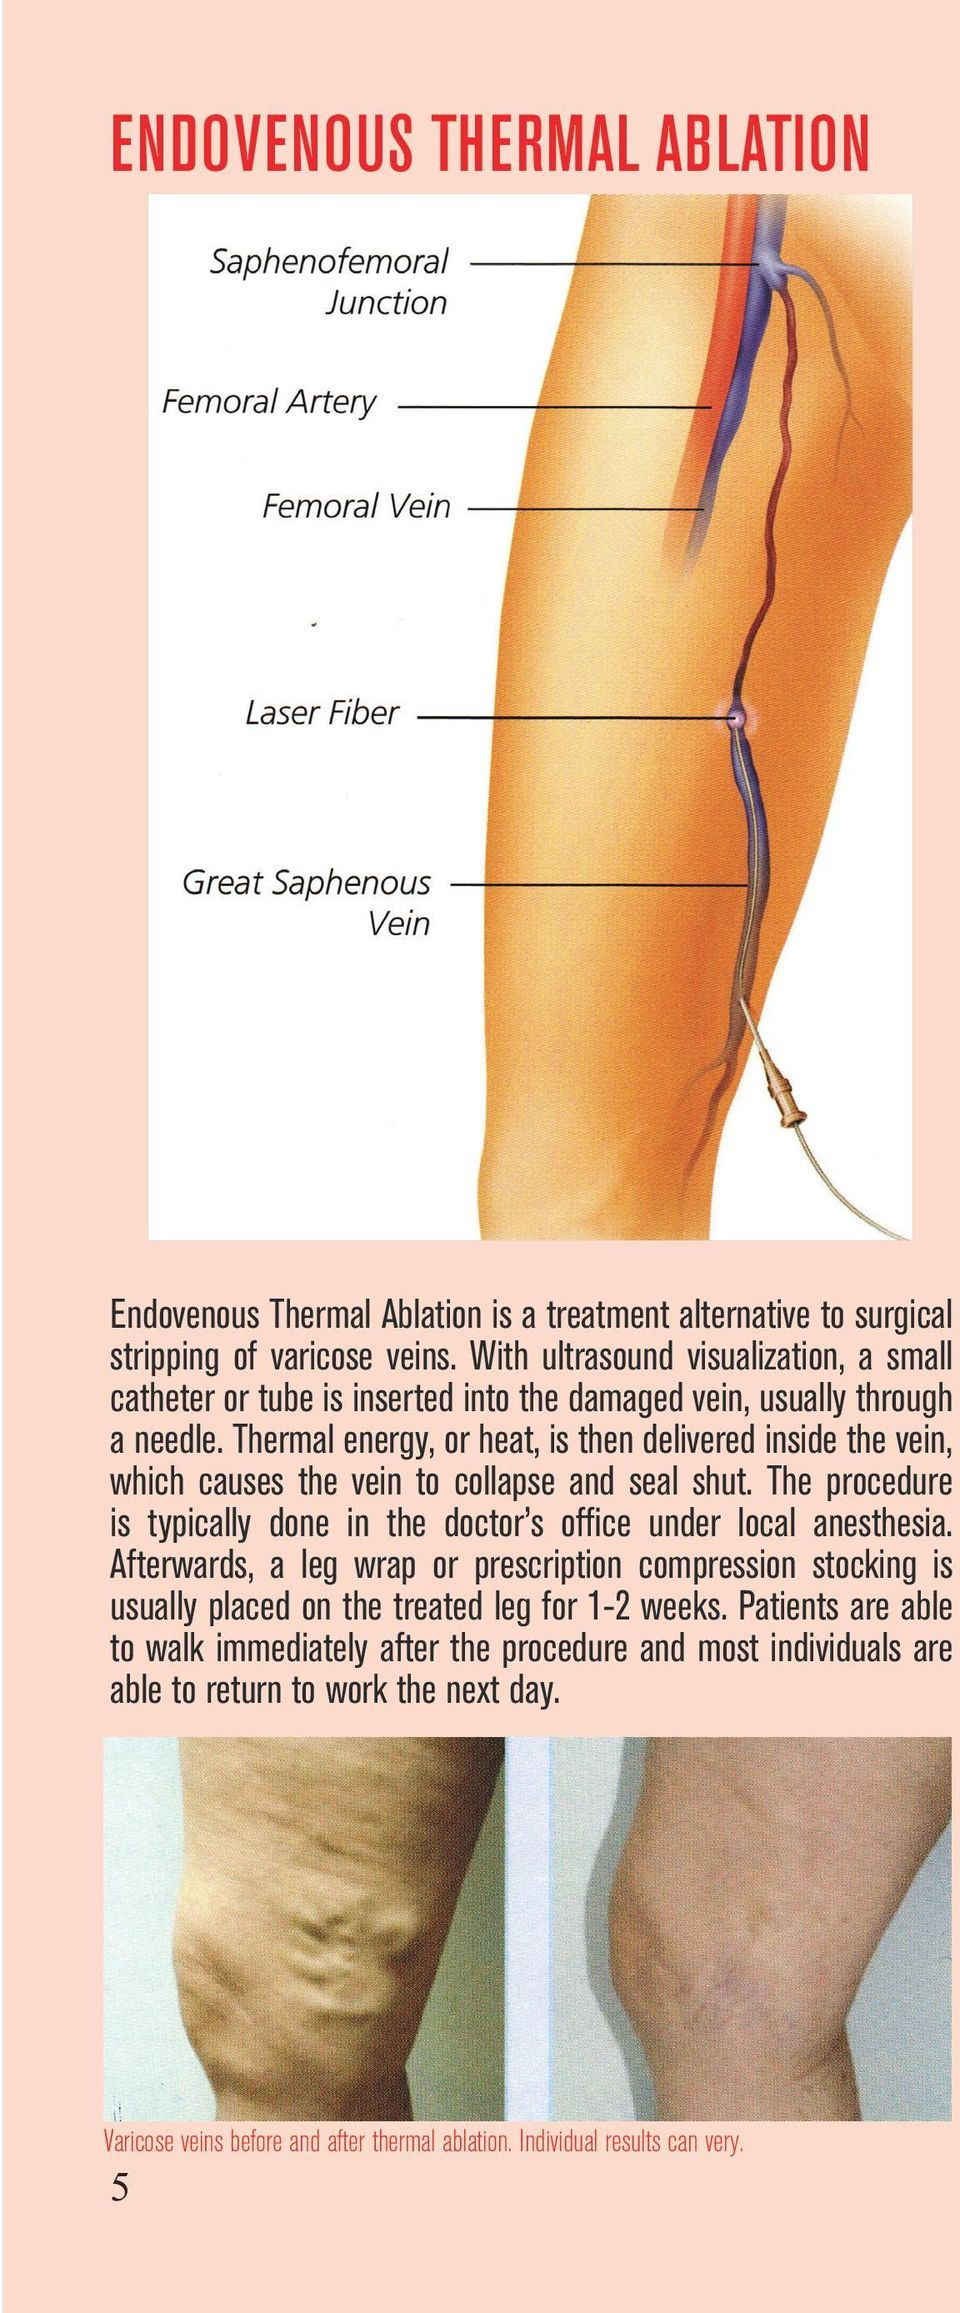 Thermal energy, or heat, is then delivered inside the vein, which causes the vein to collapse and seal shut.